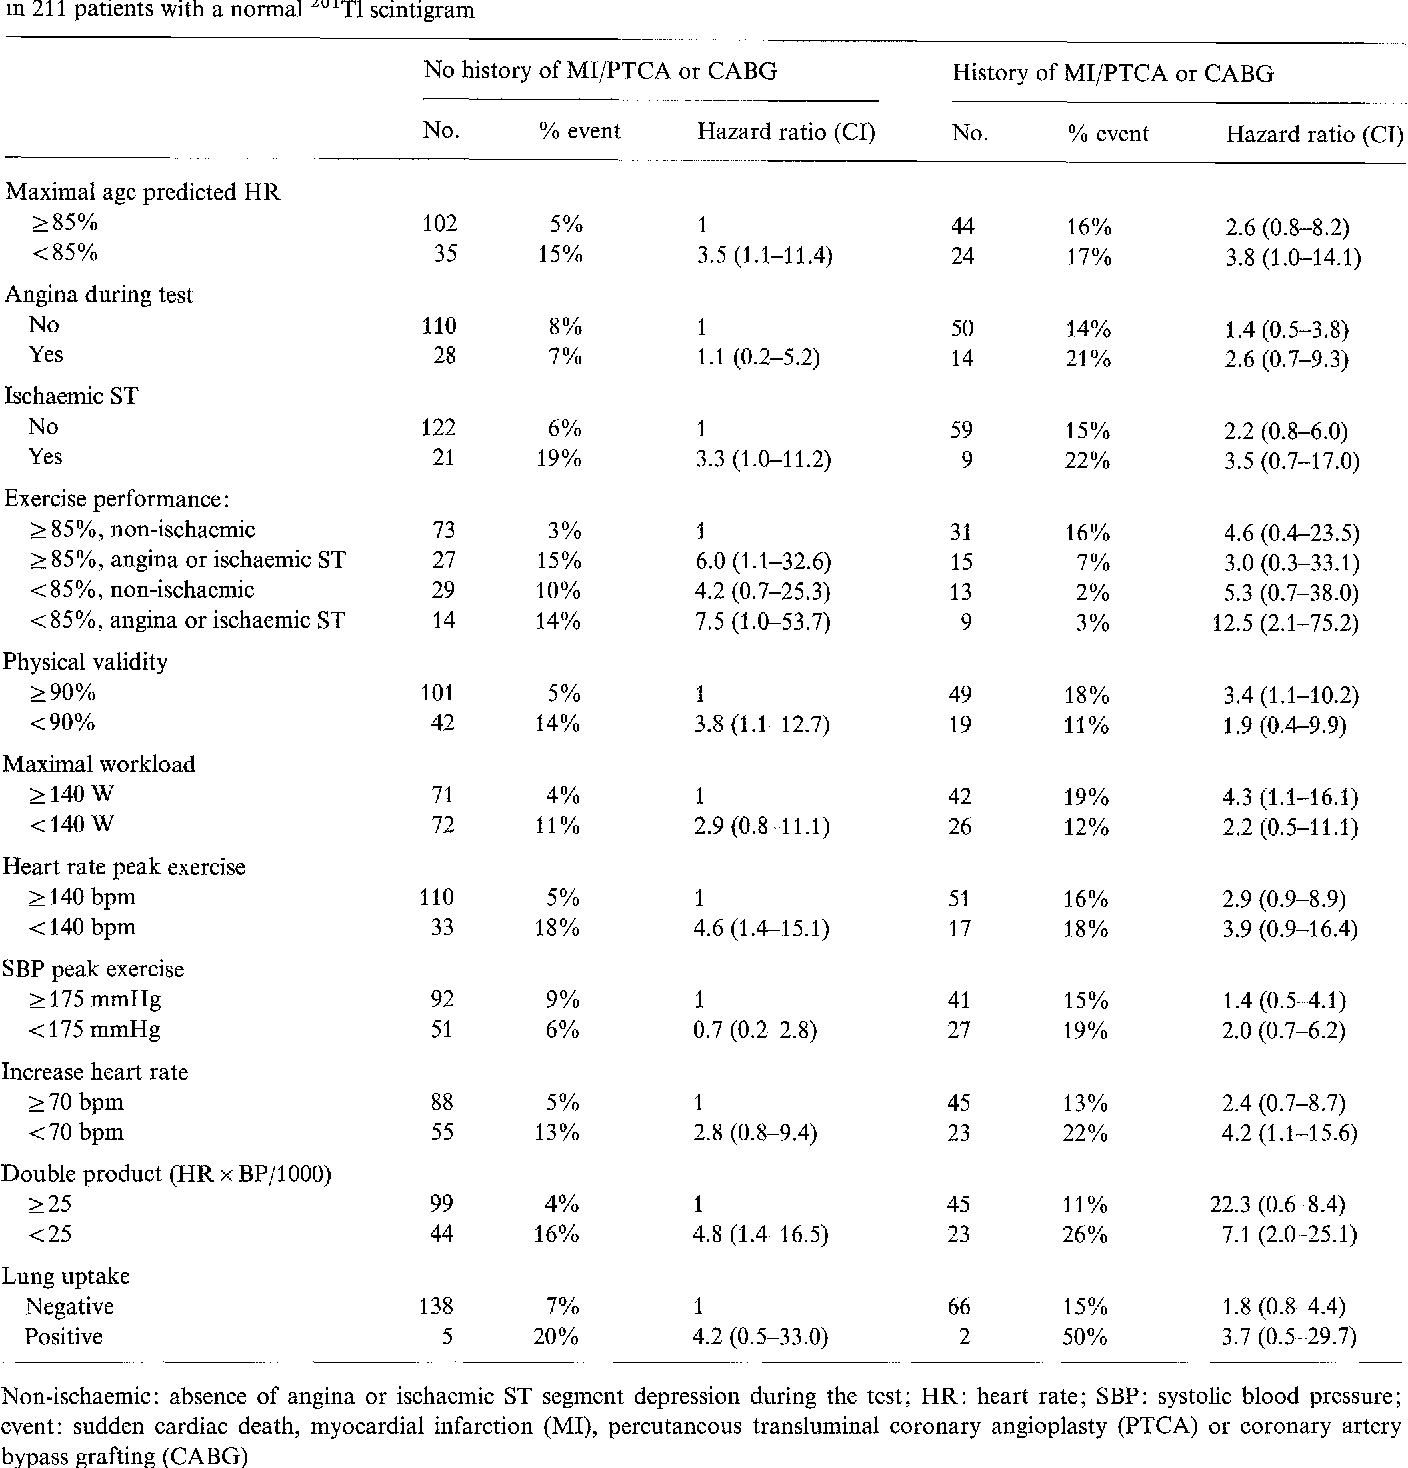 Table 2. Exercise variables with percentage of cardiac events, univariate hazard ratios for cardiac events and 95% confidence intervals in 211 patients with a normal 2°1T1 scintigram